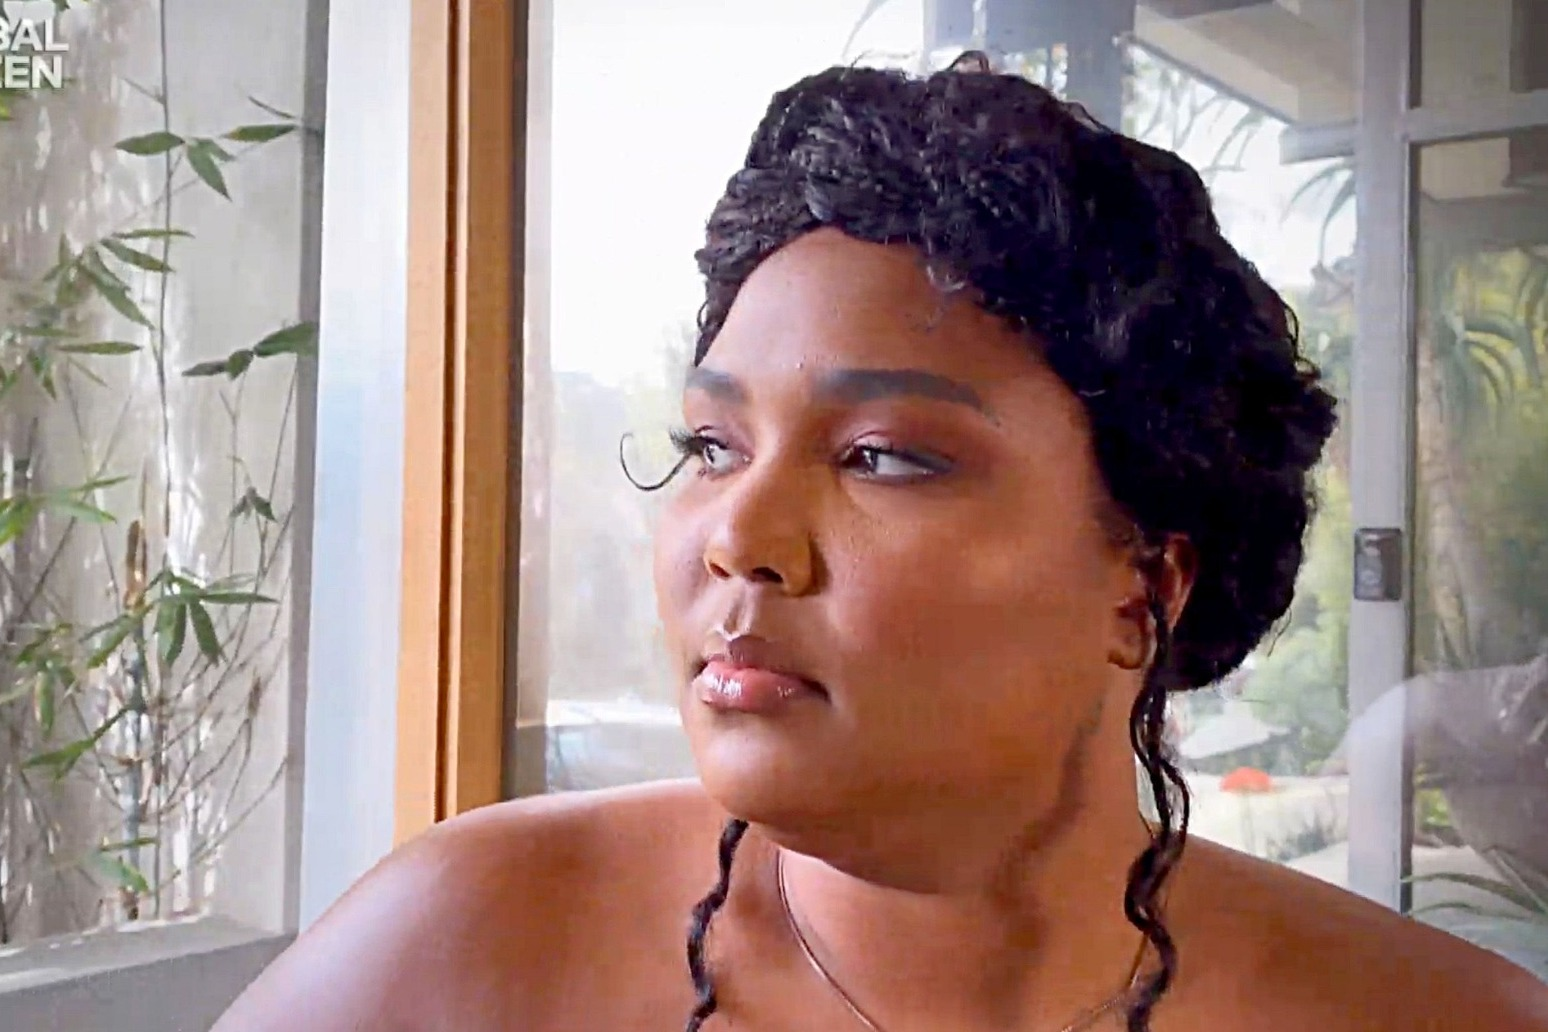 Facebook and Instagram remove abusive comments directed at Lizzo